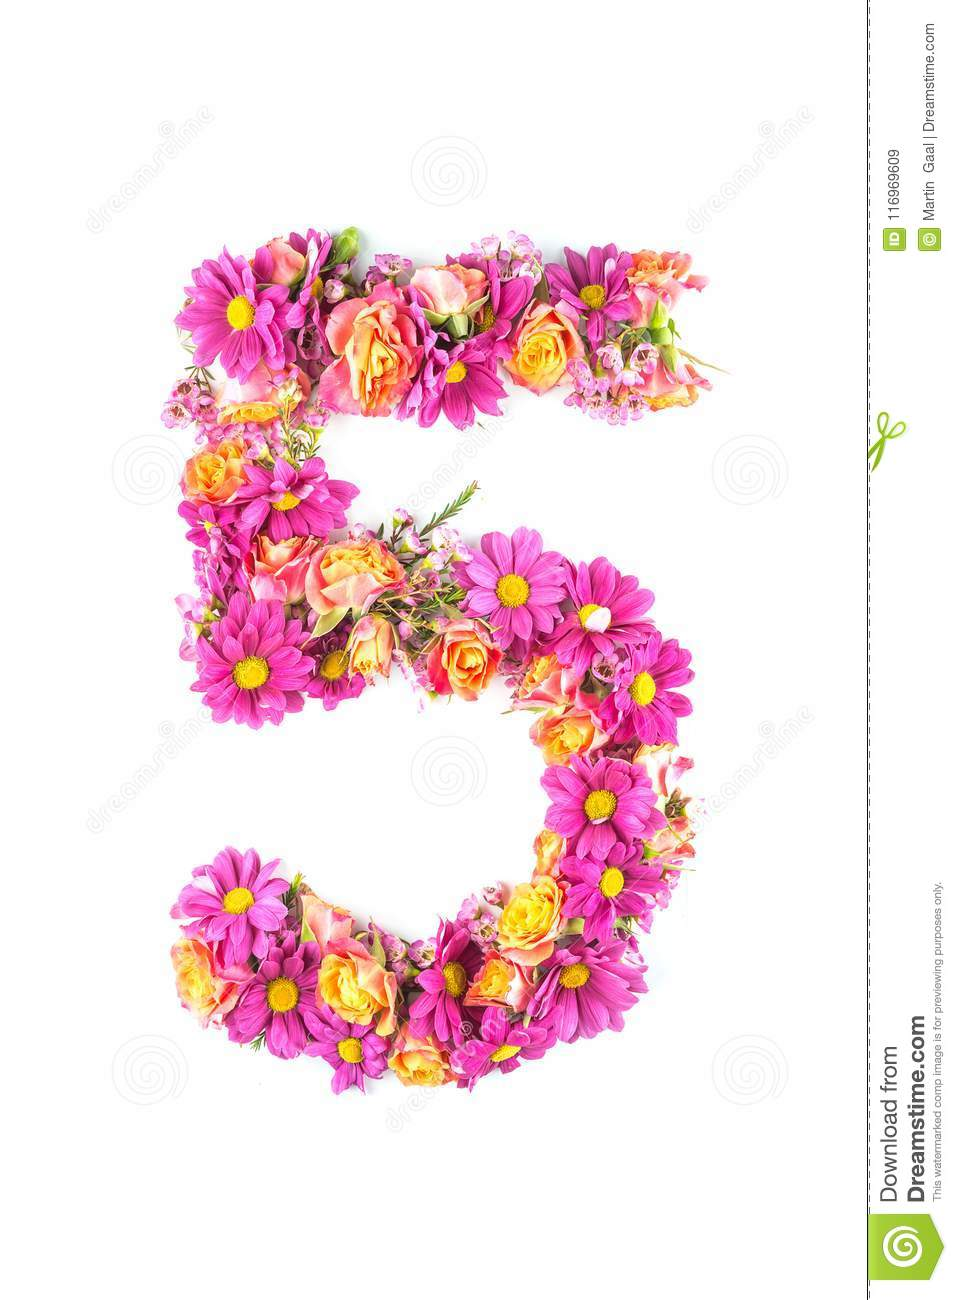 Letters and numbers made from live flowers isolated on white background, make text with flowers alphabet, exclusive idea for graph